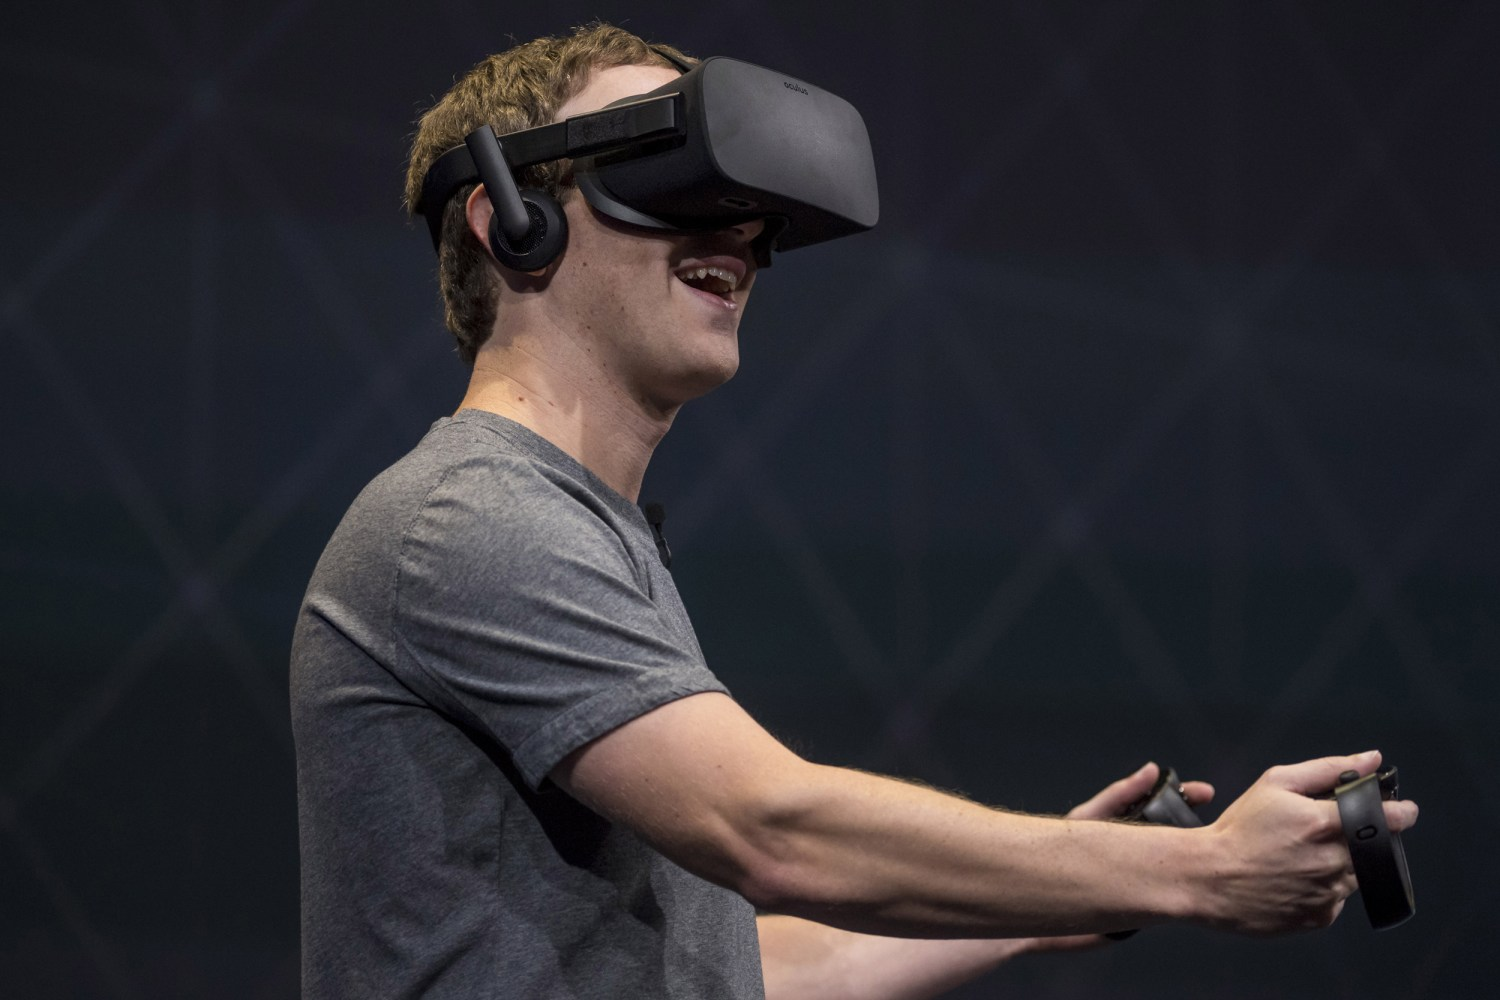 Mark Zuckerberg shows off prototype Oculus VR gloves